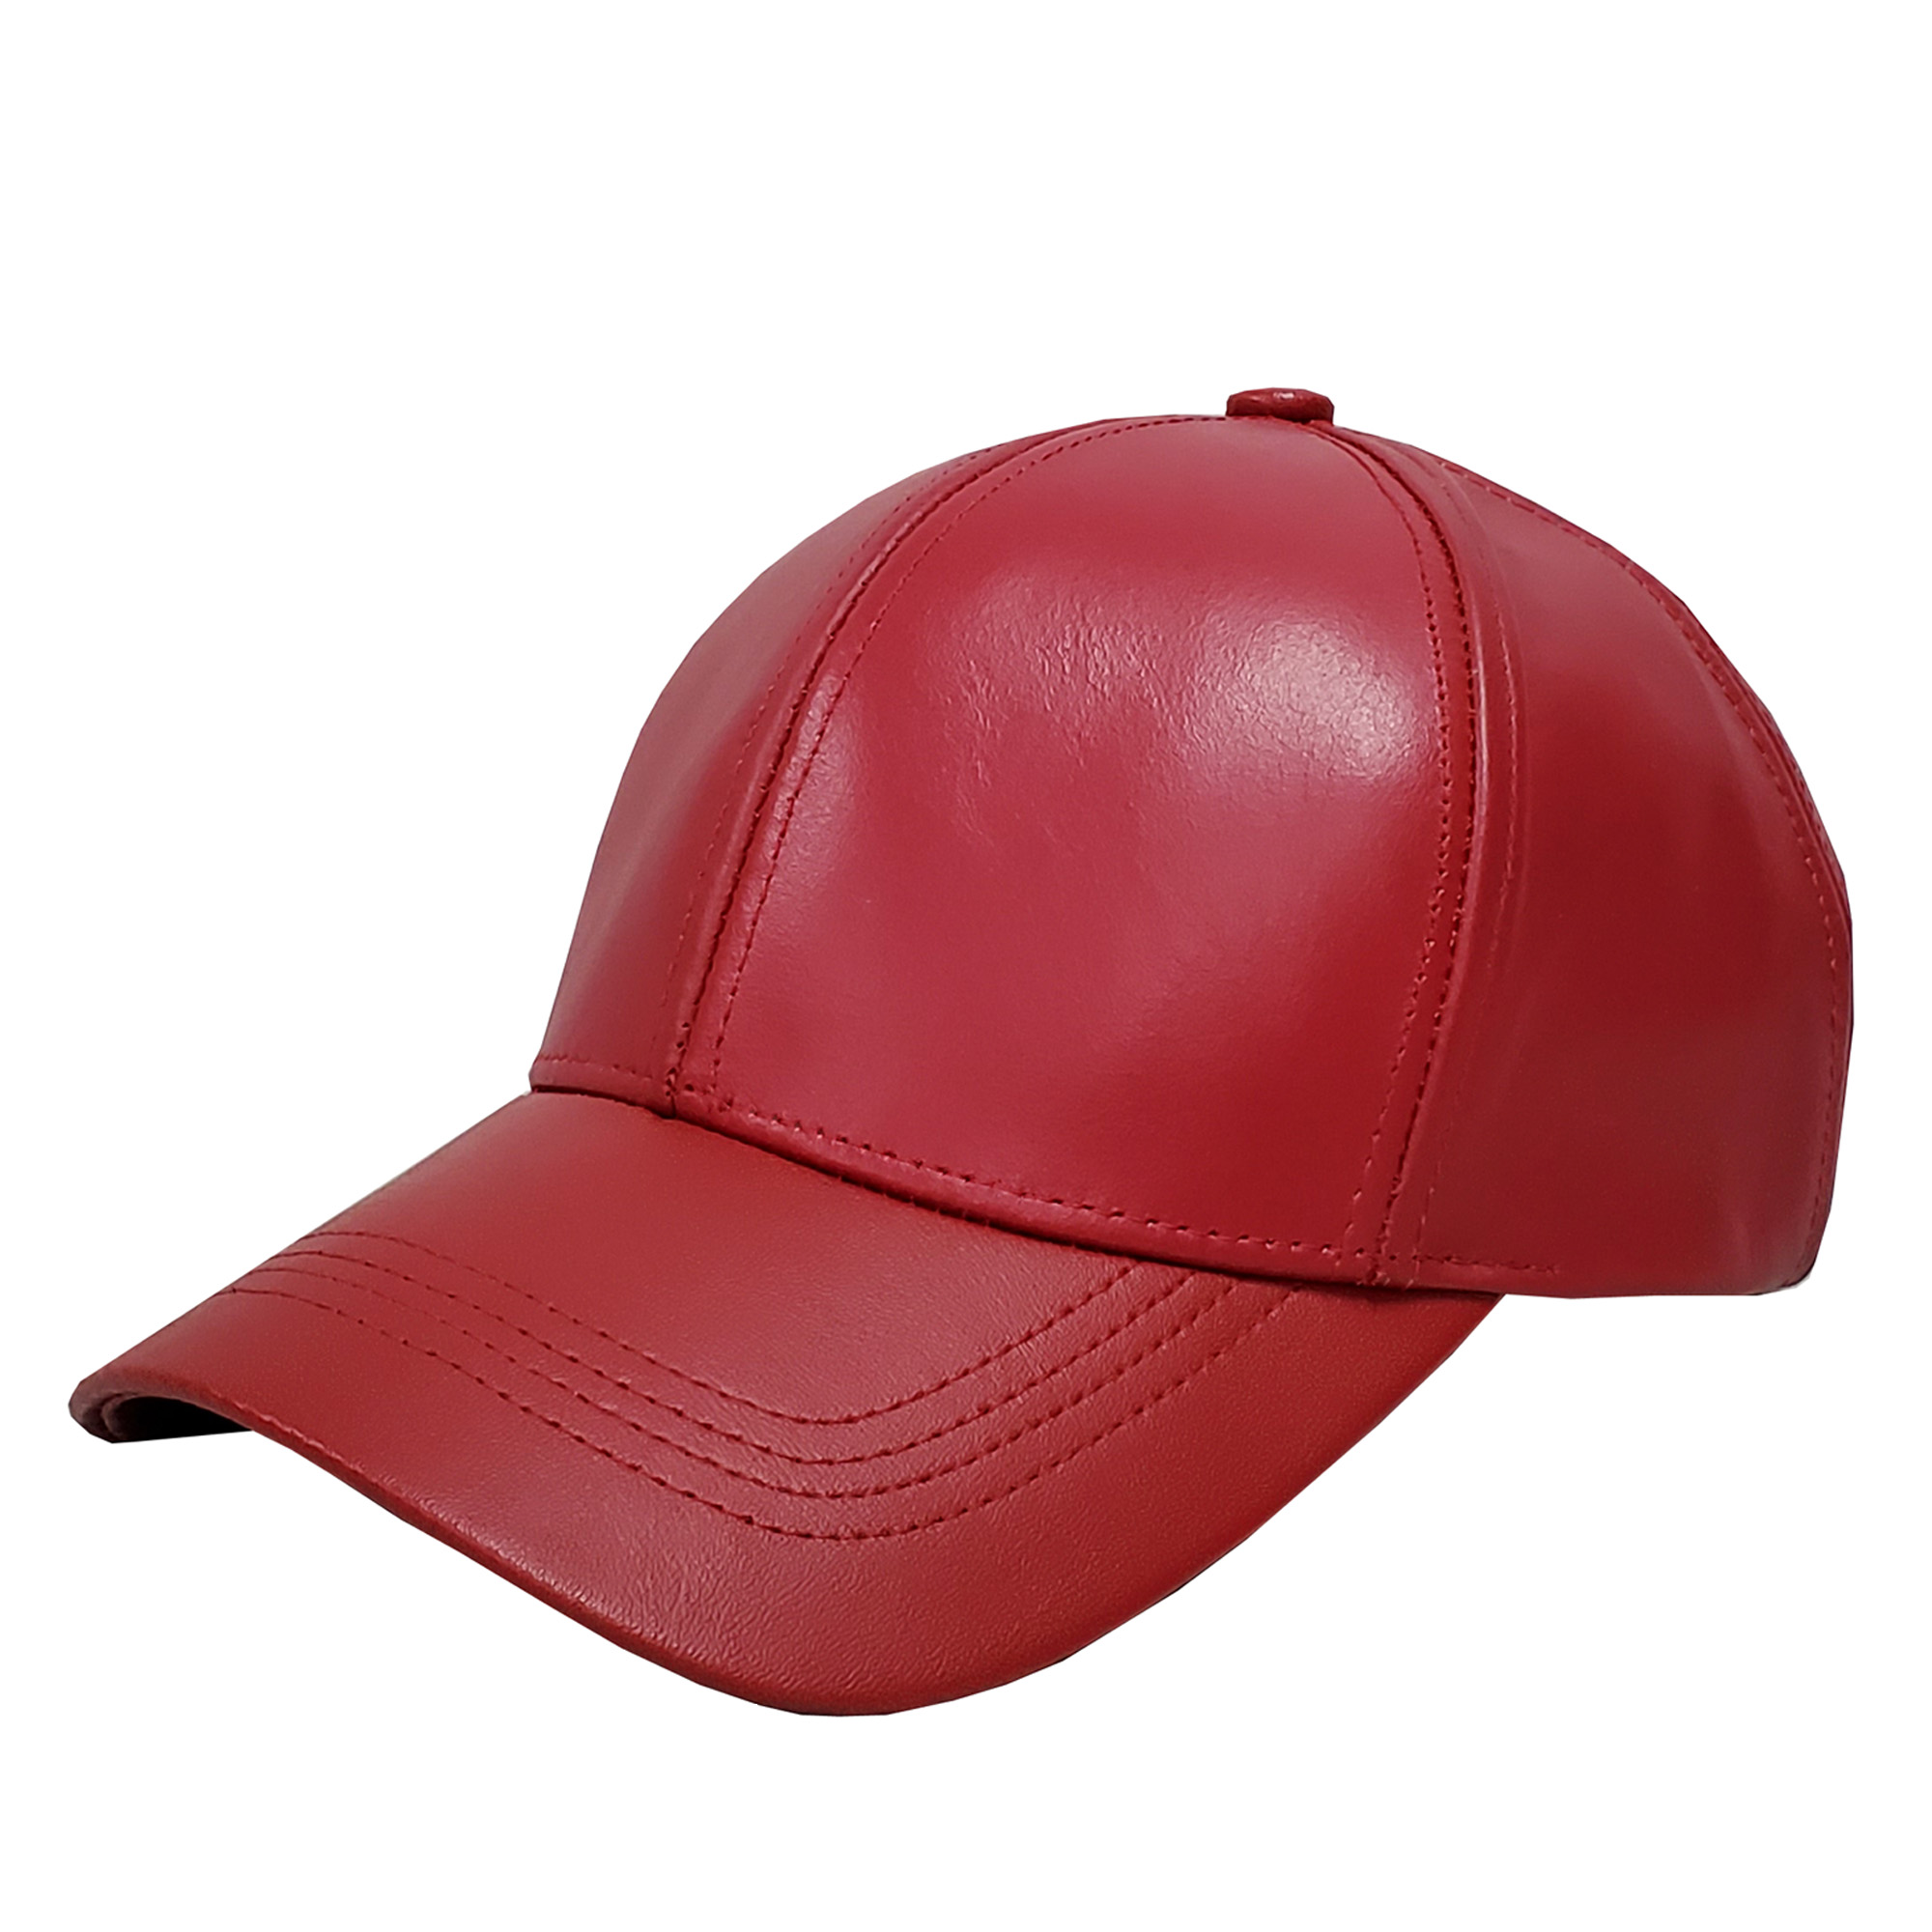 Red Leather Baseball Cap